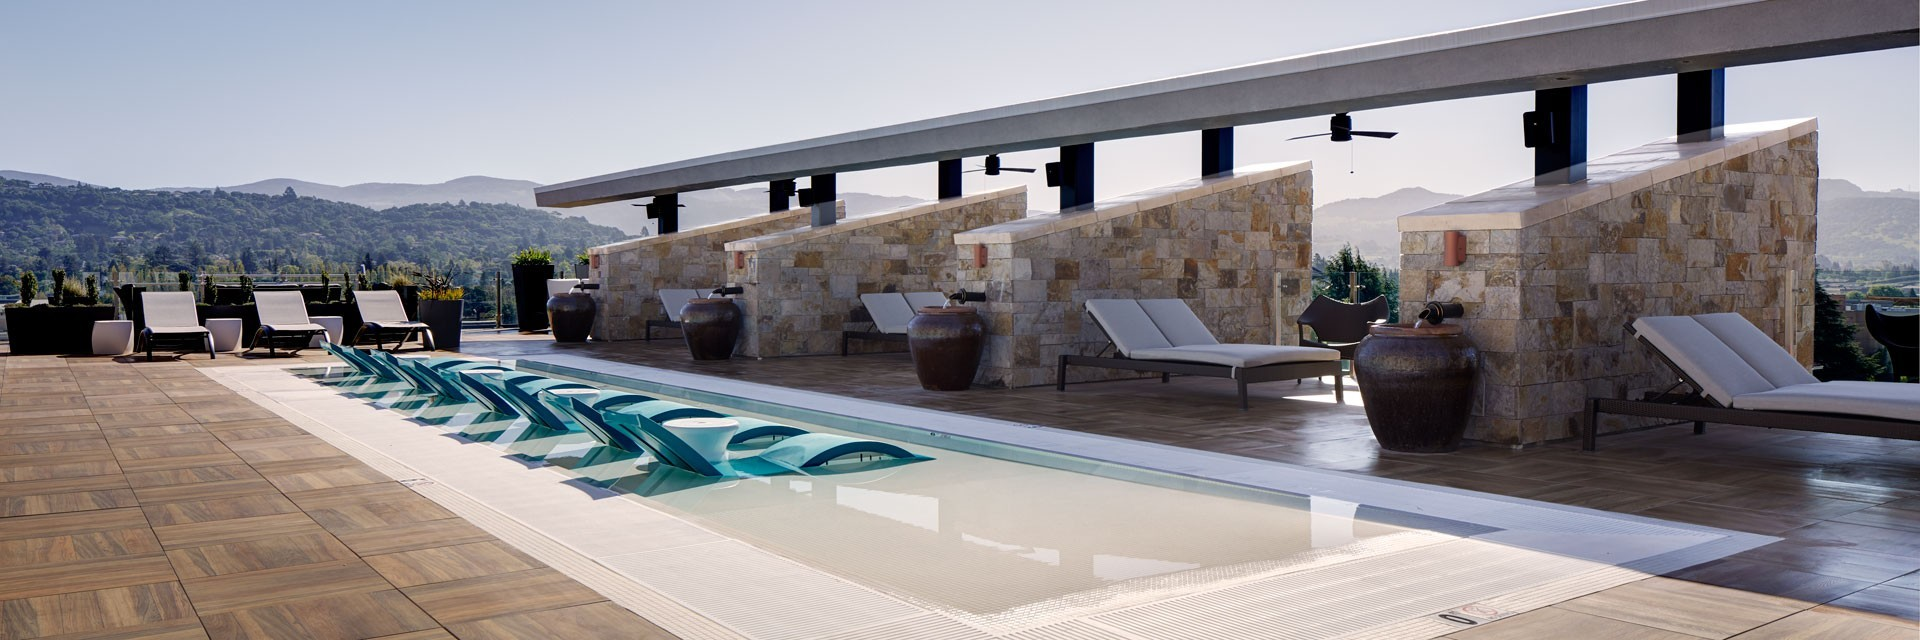 Archer Hotel Napa - rooftop water deck with cabanas and sky view